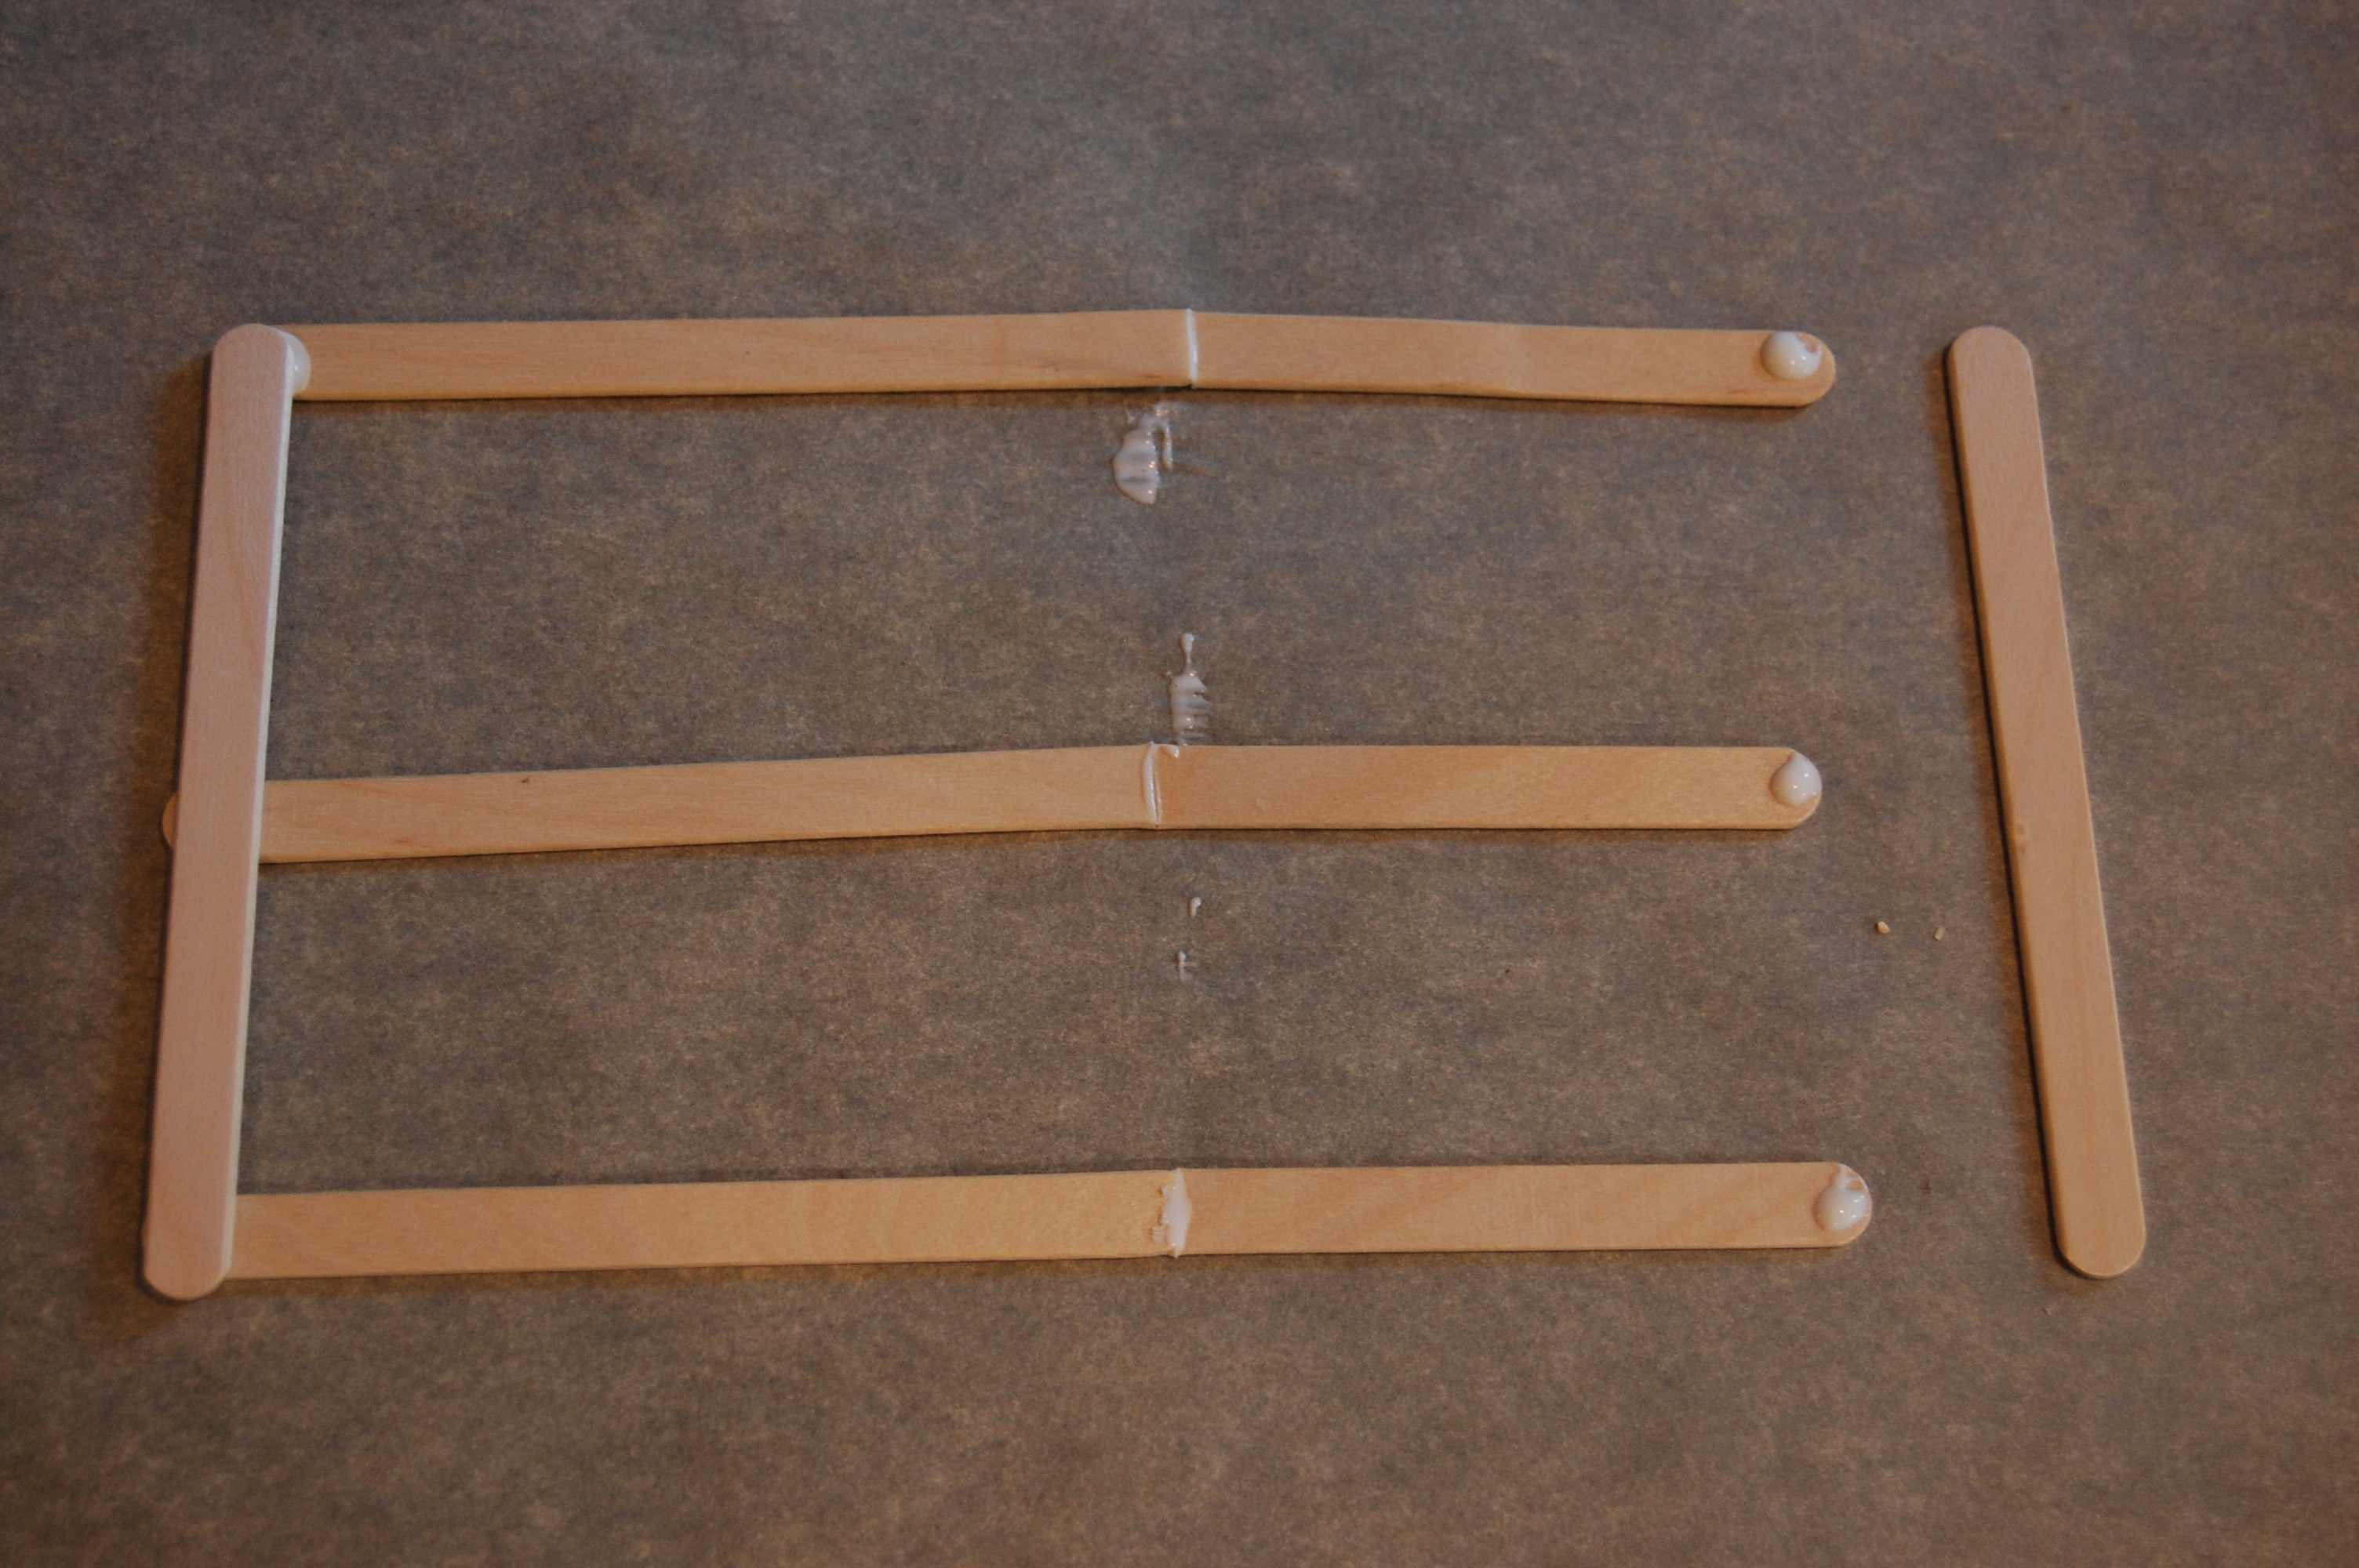 popsicle stick ten frame tutorial - Mathematics and Science in SD#38 ...